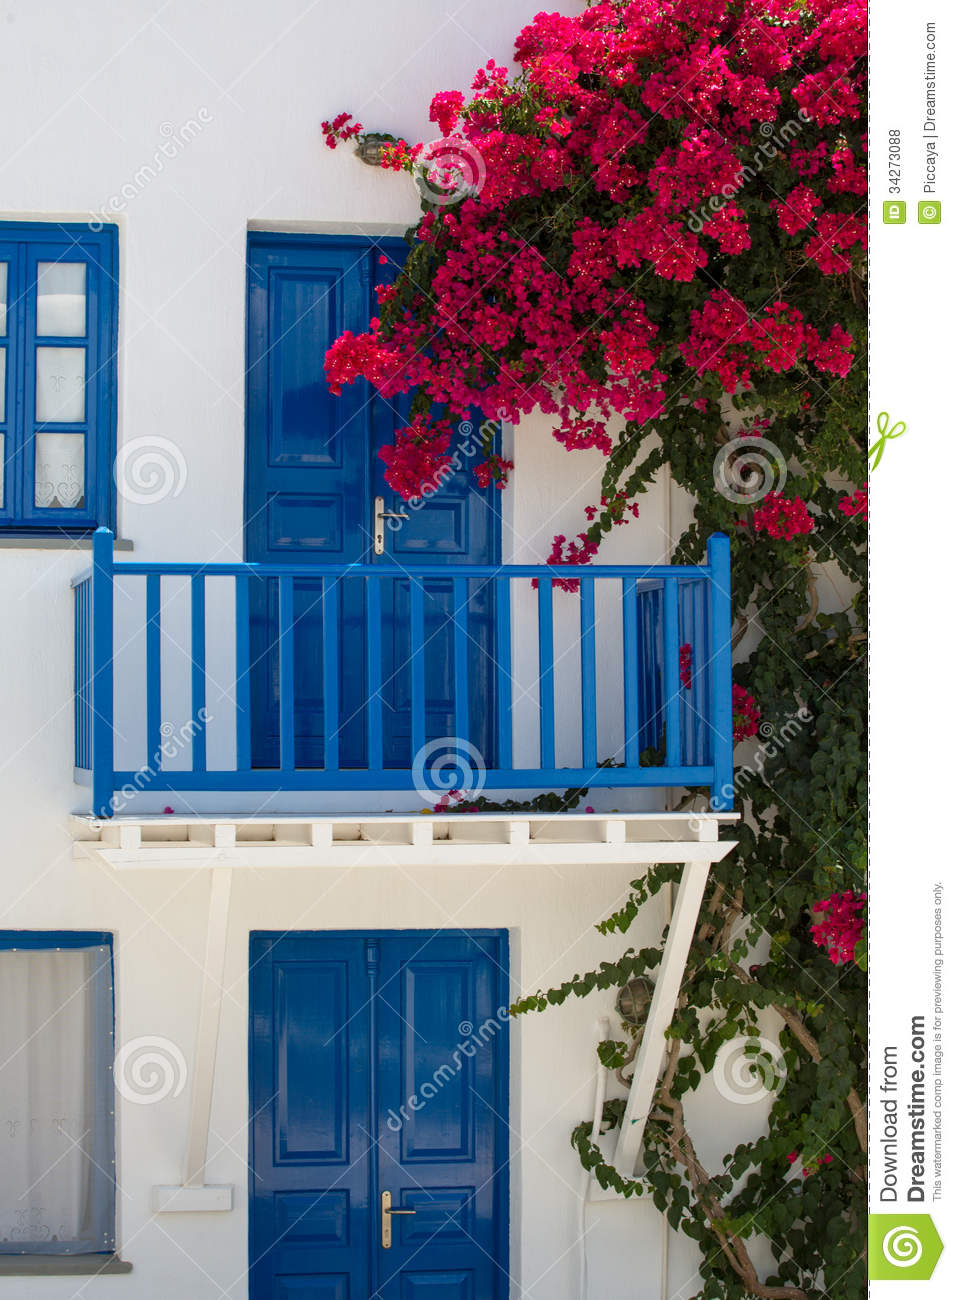 Facade Of A Typical Bleu And White Greek House Royalty